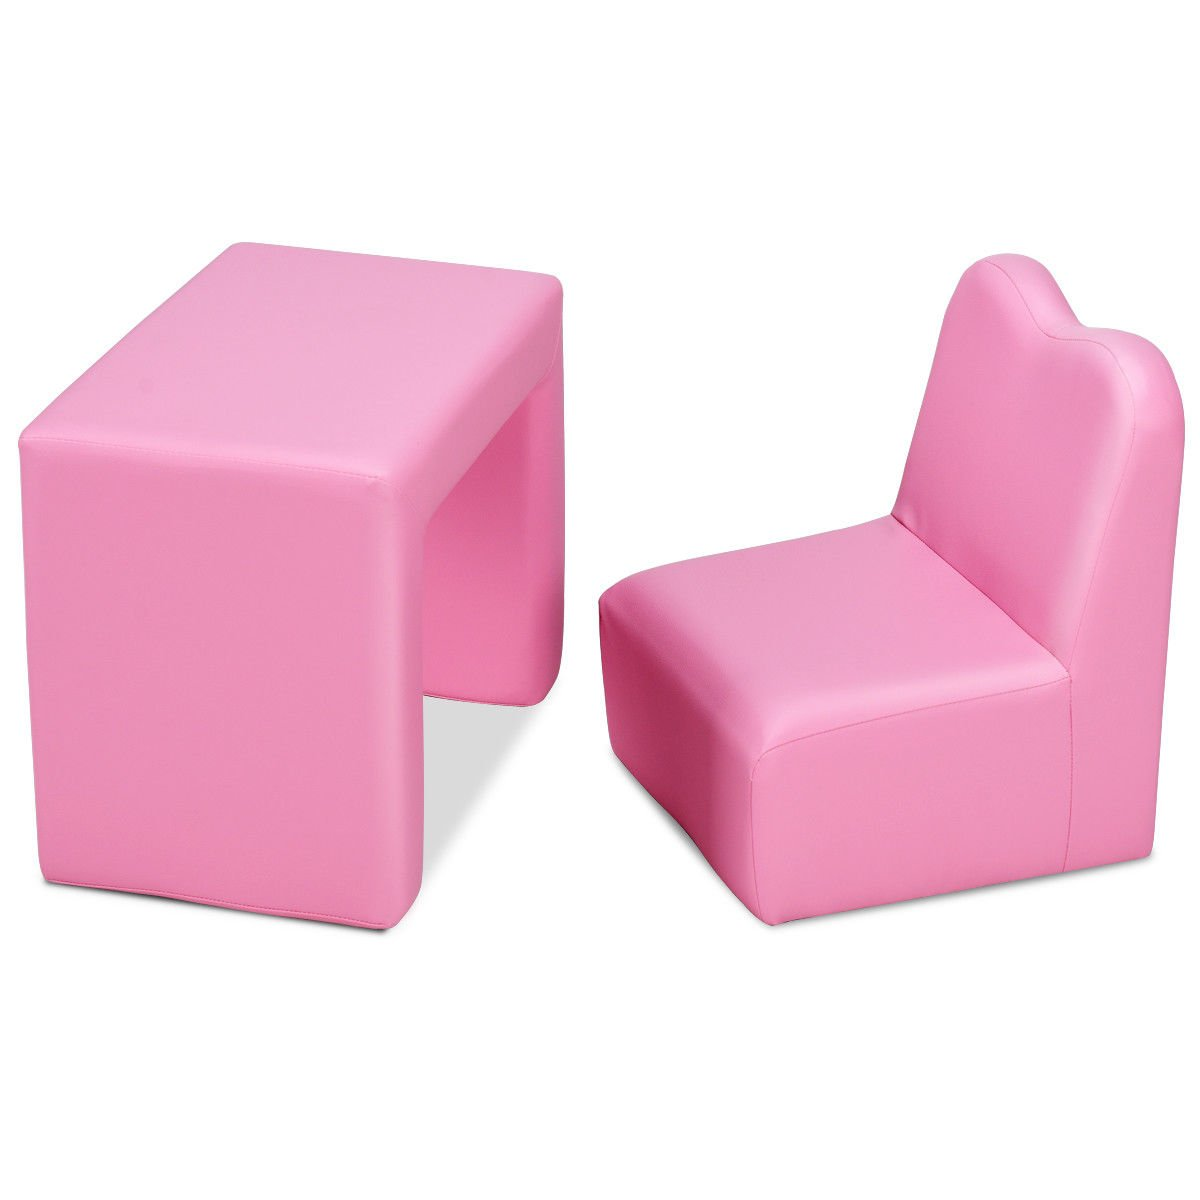 Pink Multi Functional Kids PVC Leather Sofa Table Chair Set Folded Armchair